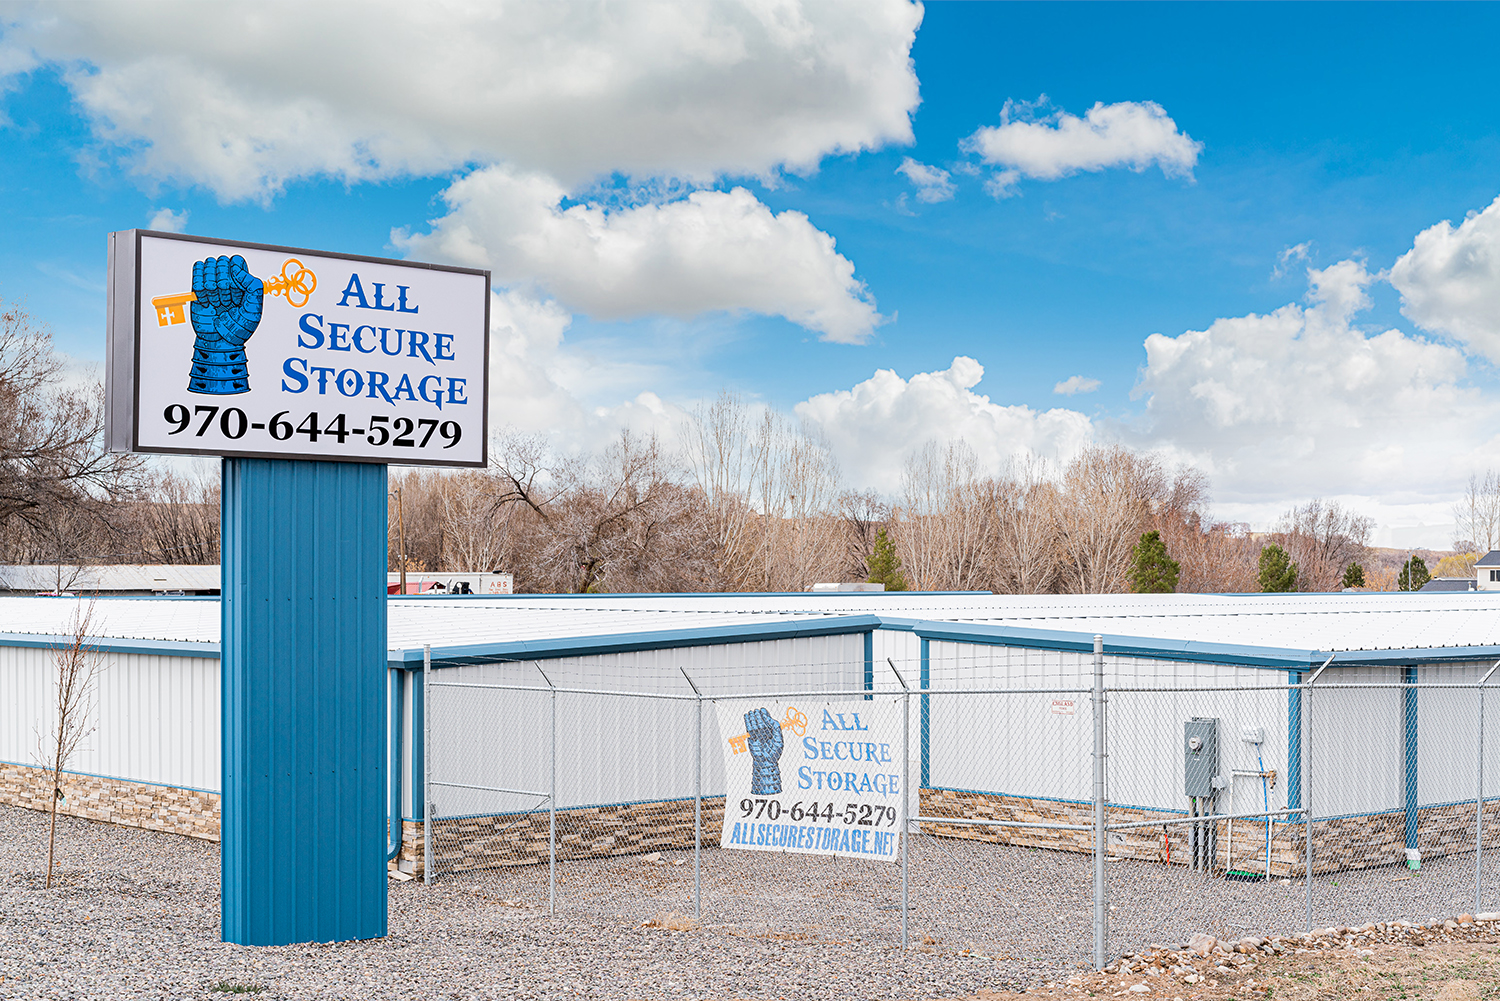 All Secure Storage Facility in Montrose CO